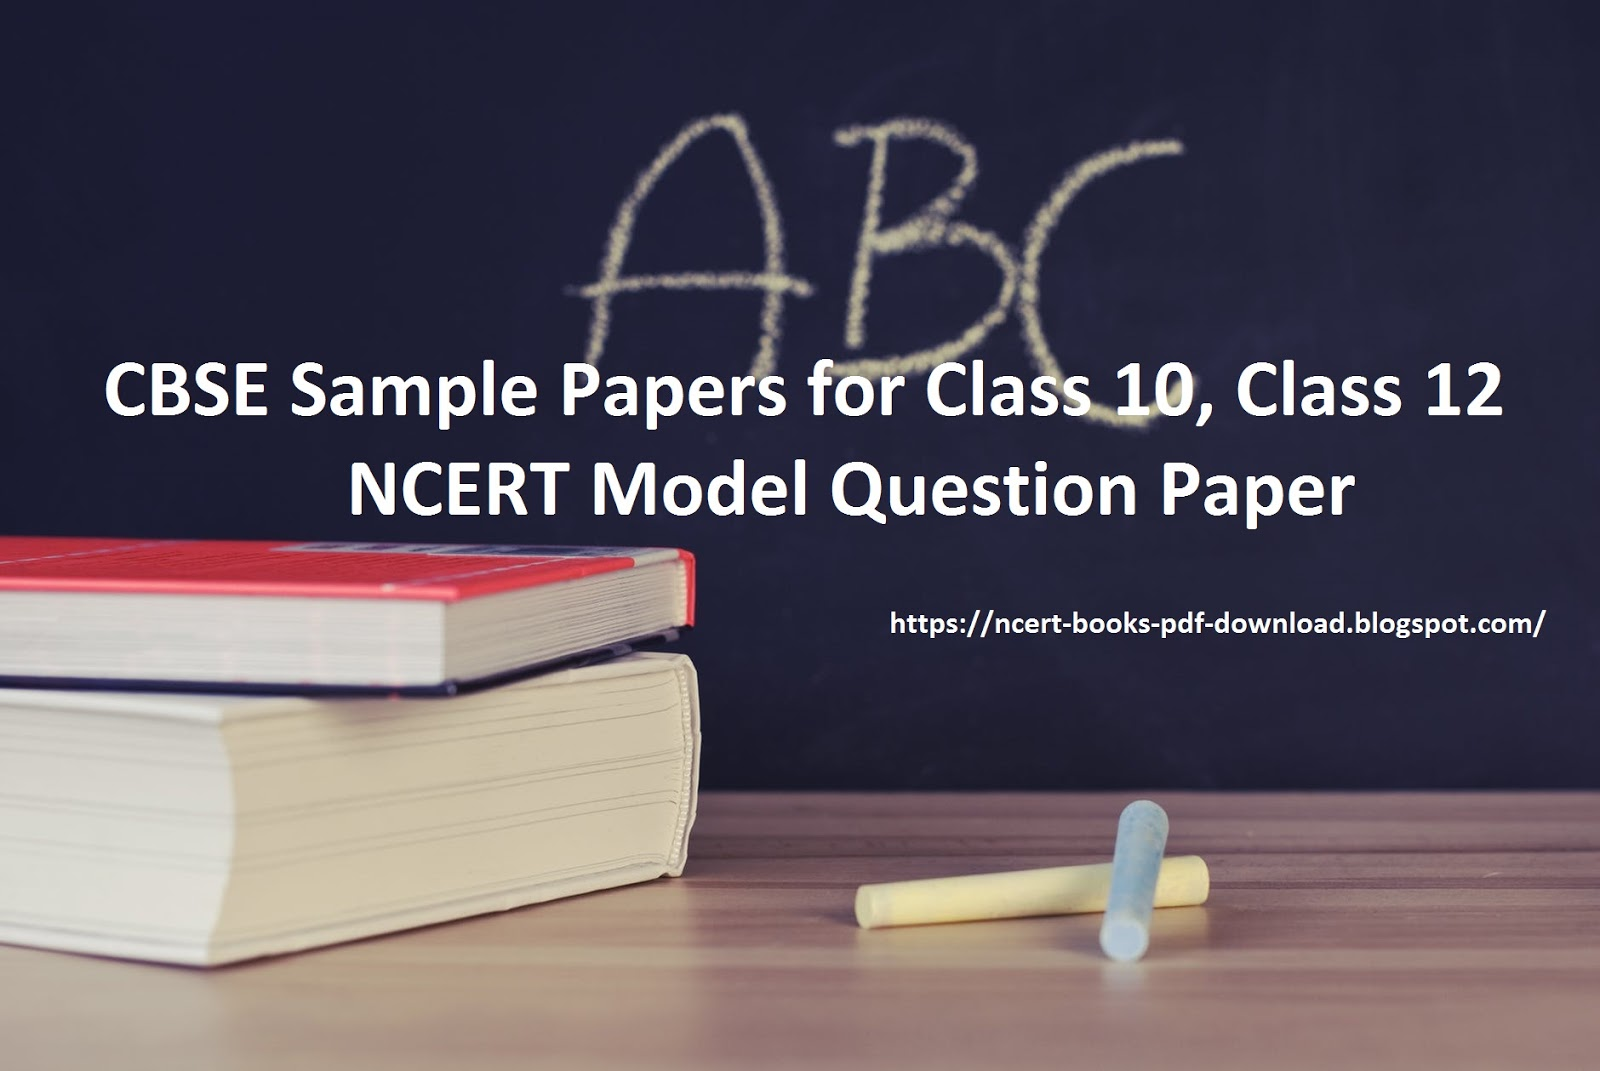 CBSE Sample Papers for Class 10, Class 12 | NCERT Model Question Paper